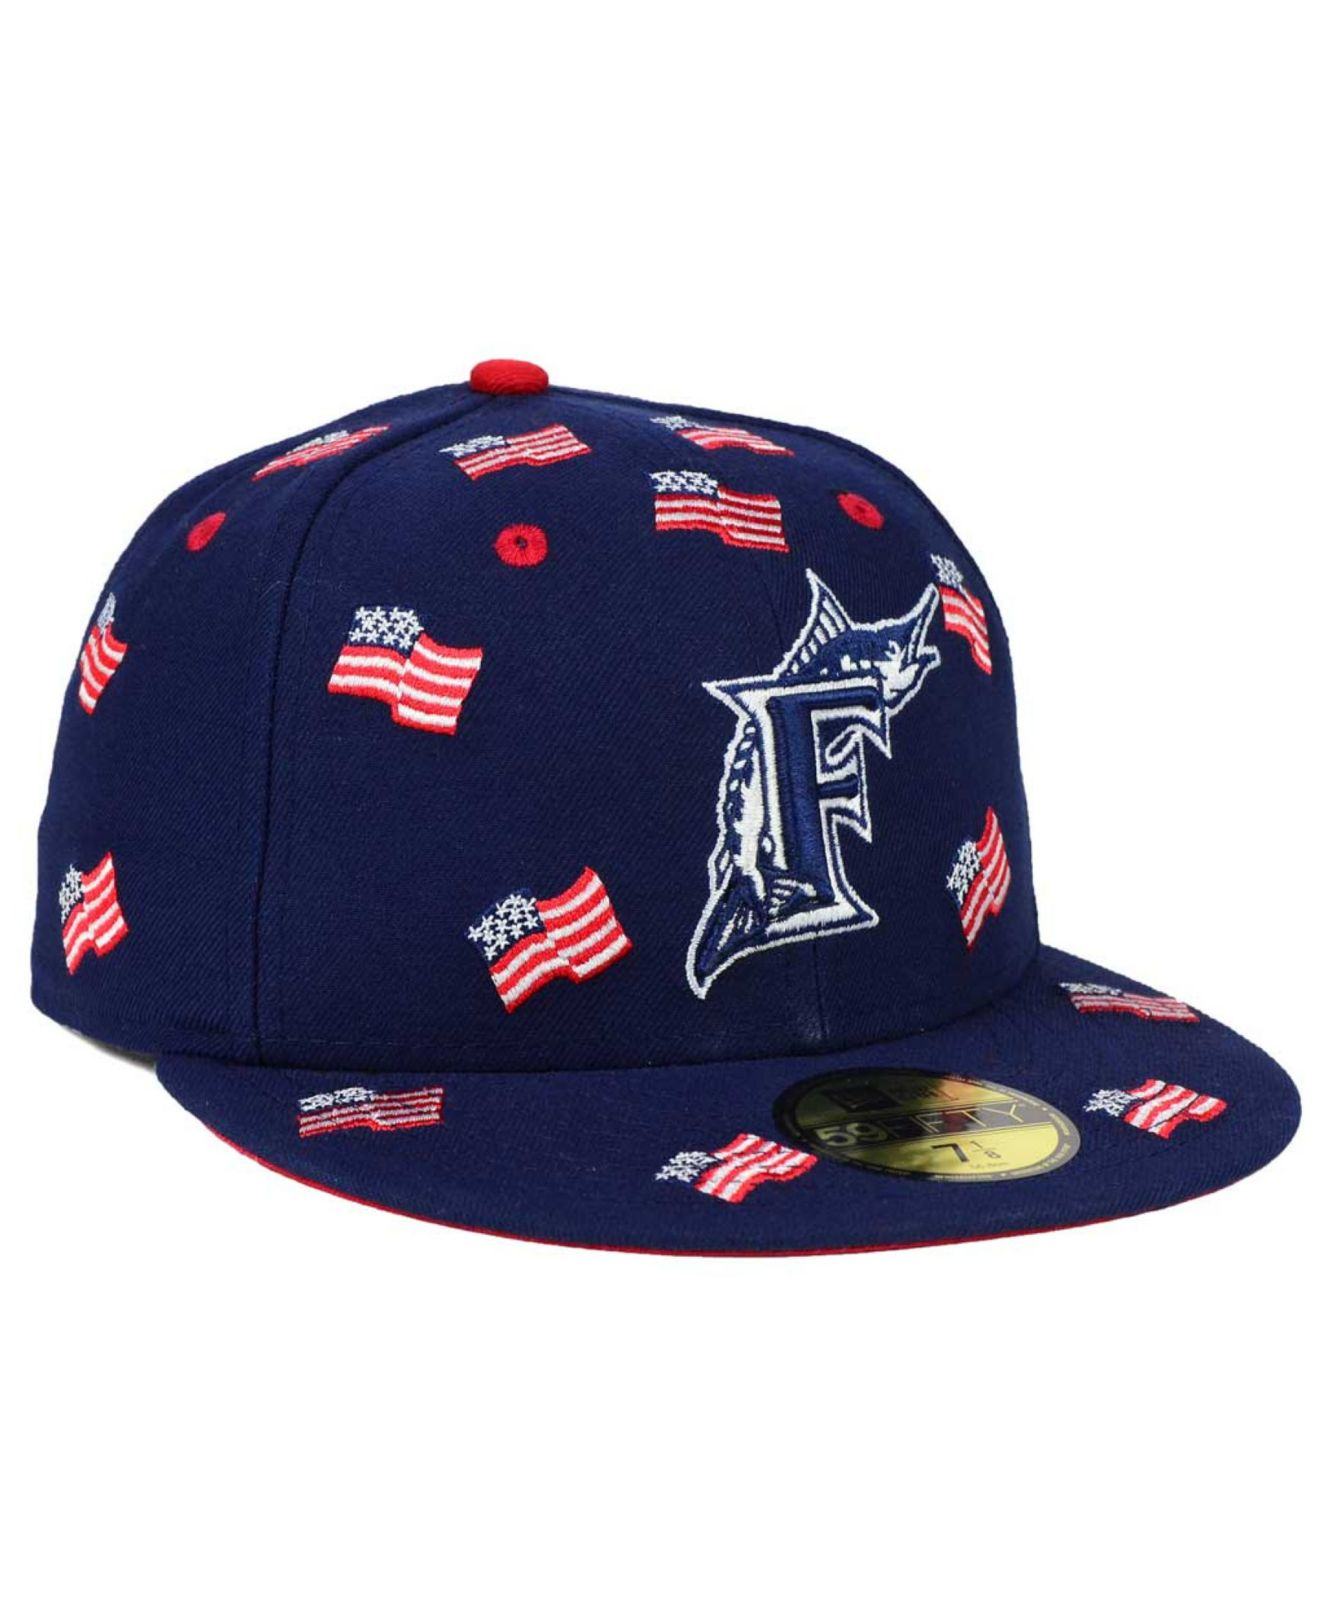 free shipping dab99 a5c93 amazon miami marlins new era mlb fall prism pack 59fifty cap dac3a 5a95a   reduced lyst ktz florida marlins all flags 59fifty cap in blue for men  31237 5b403